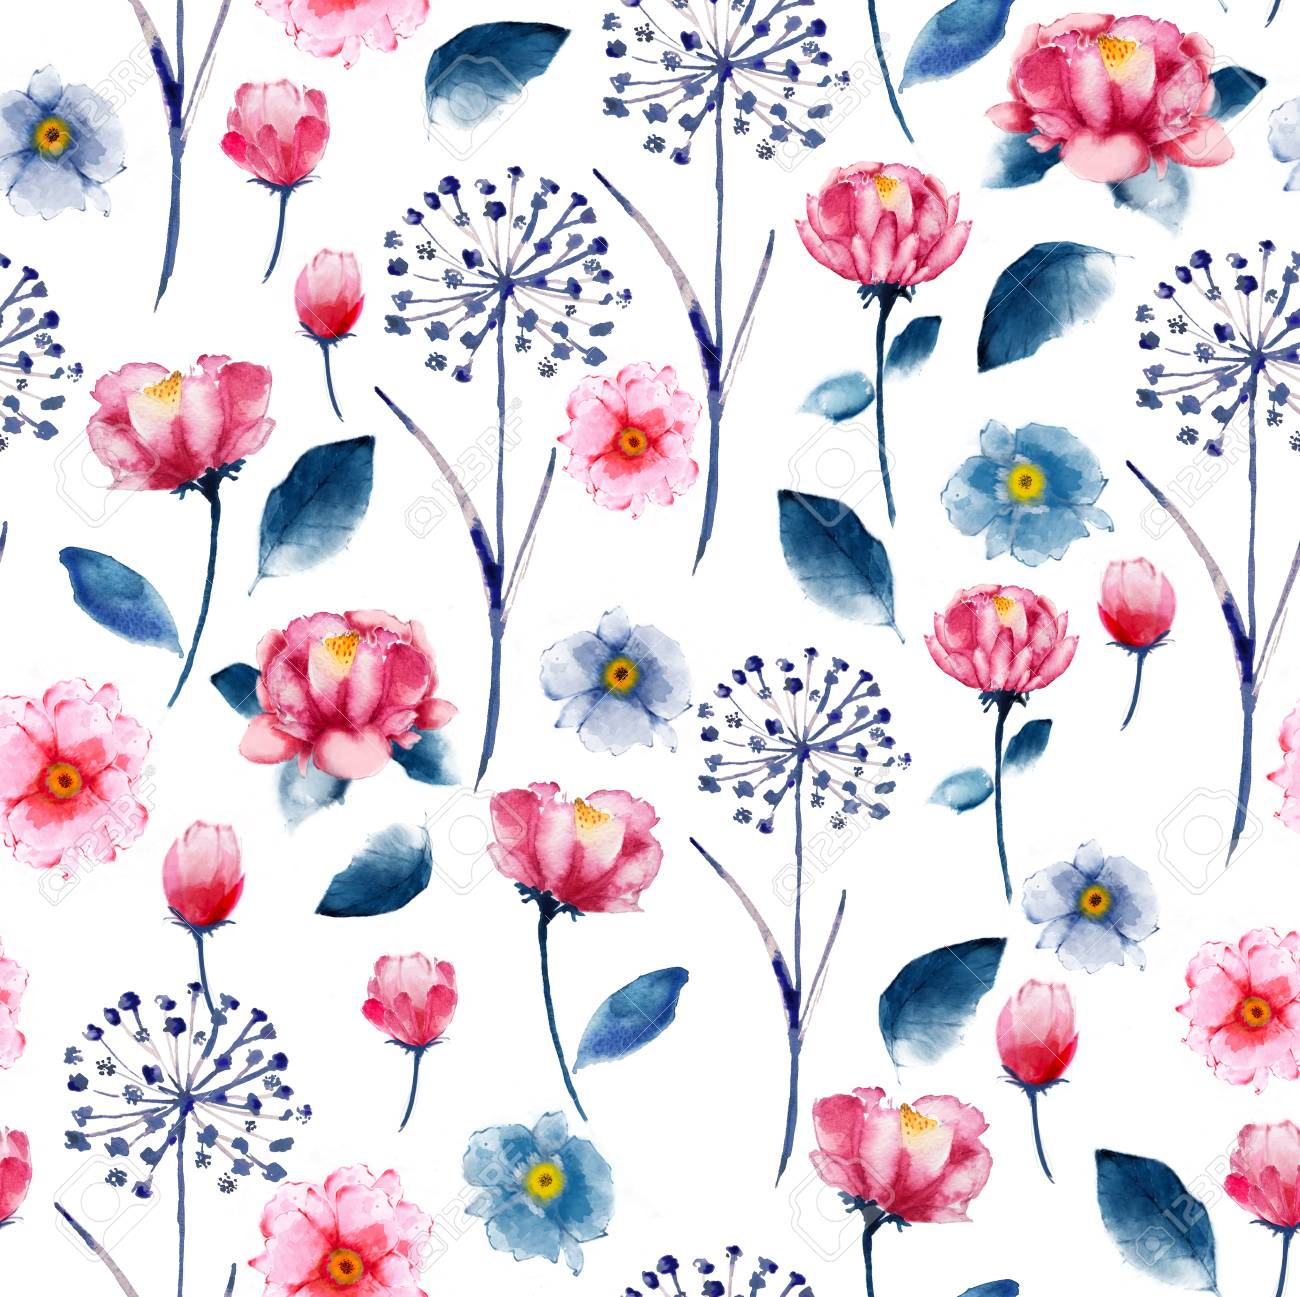 Seamless Bright Watercolor Floral Pattern Delicate Flower Wallpaper Stock Photo Picture And Royalty Free Image Image 92319461